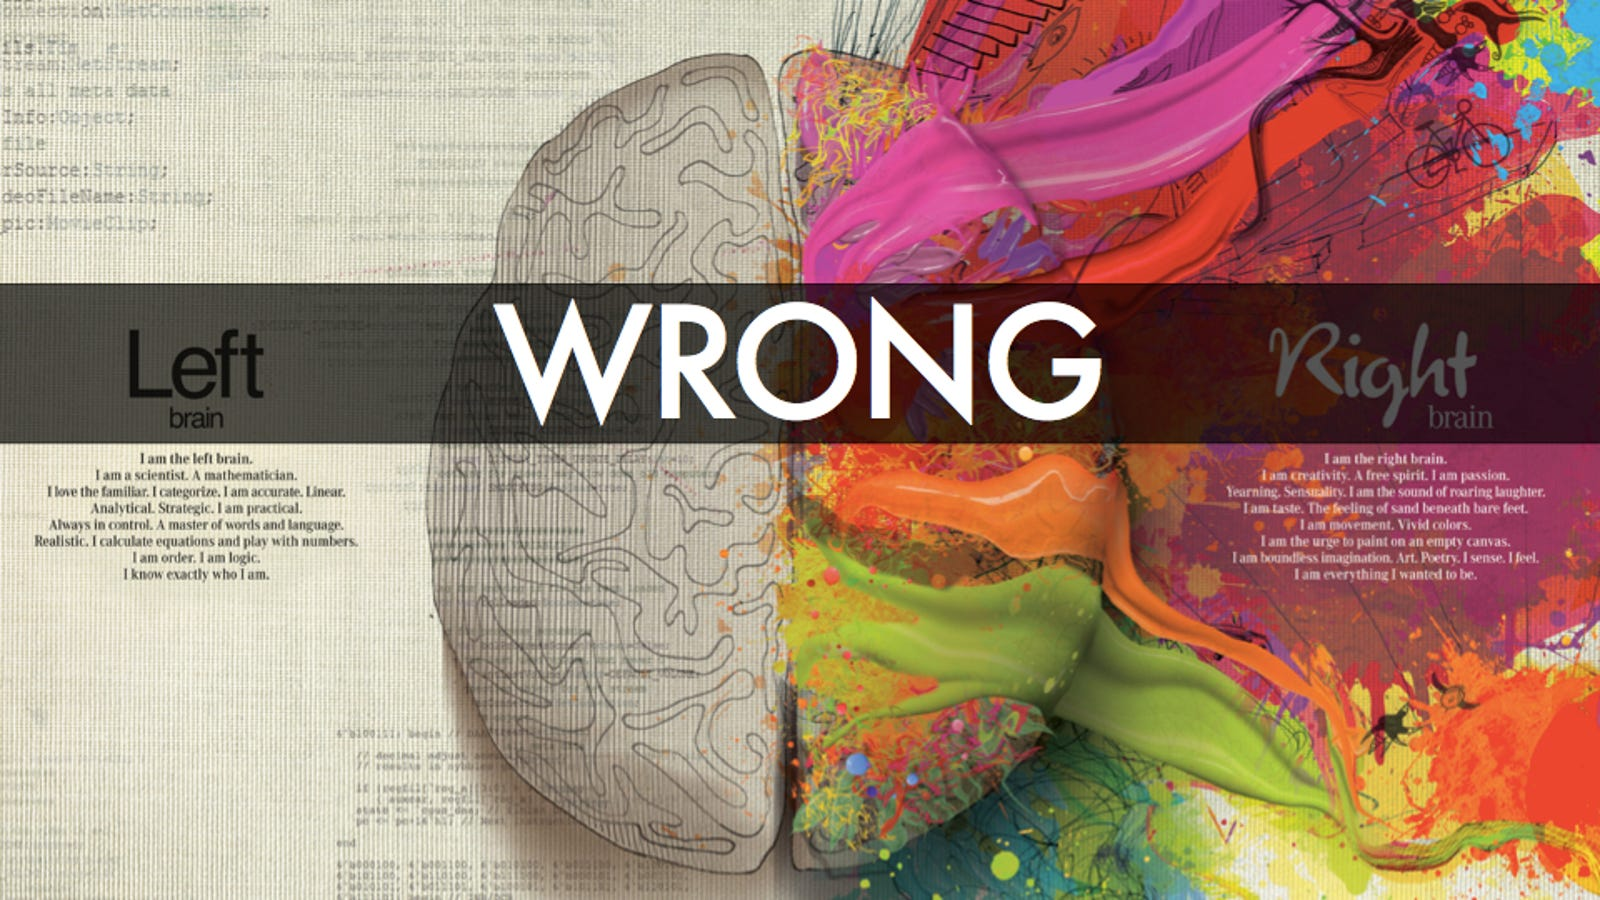 Why The Left Brain Right Brain Myth Will Probably Never Die